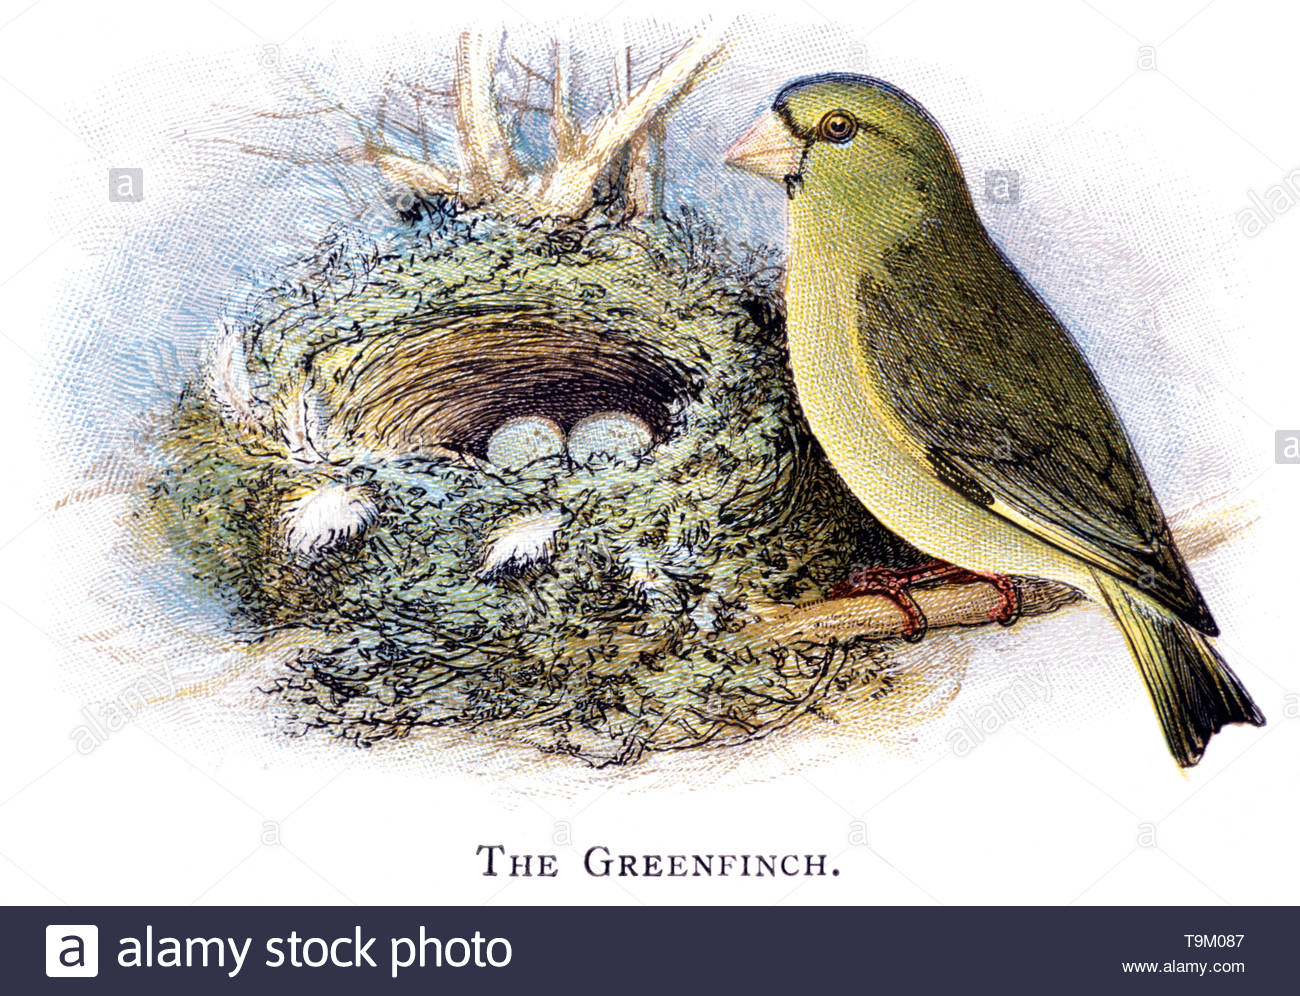 Greenfinch (Carduelis chloris) at nest with eggs, vintage illustration published in 1898 - Stock Image